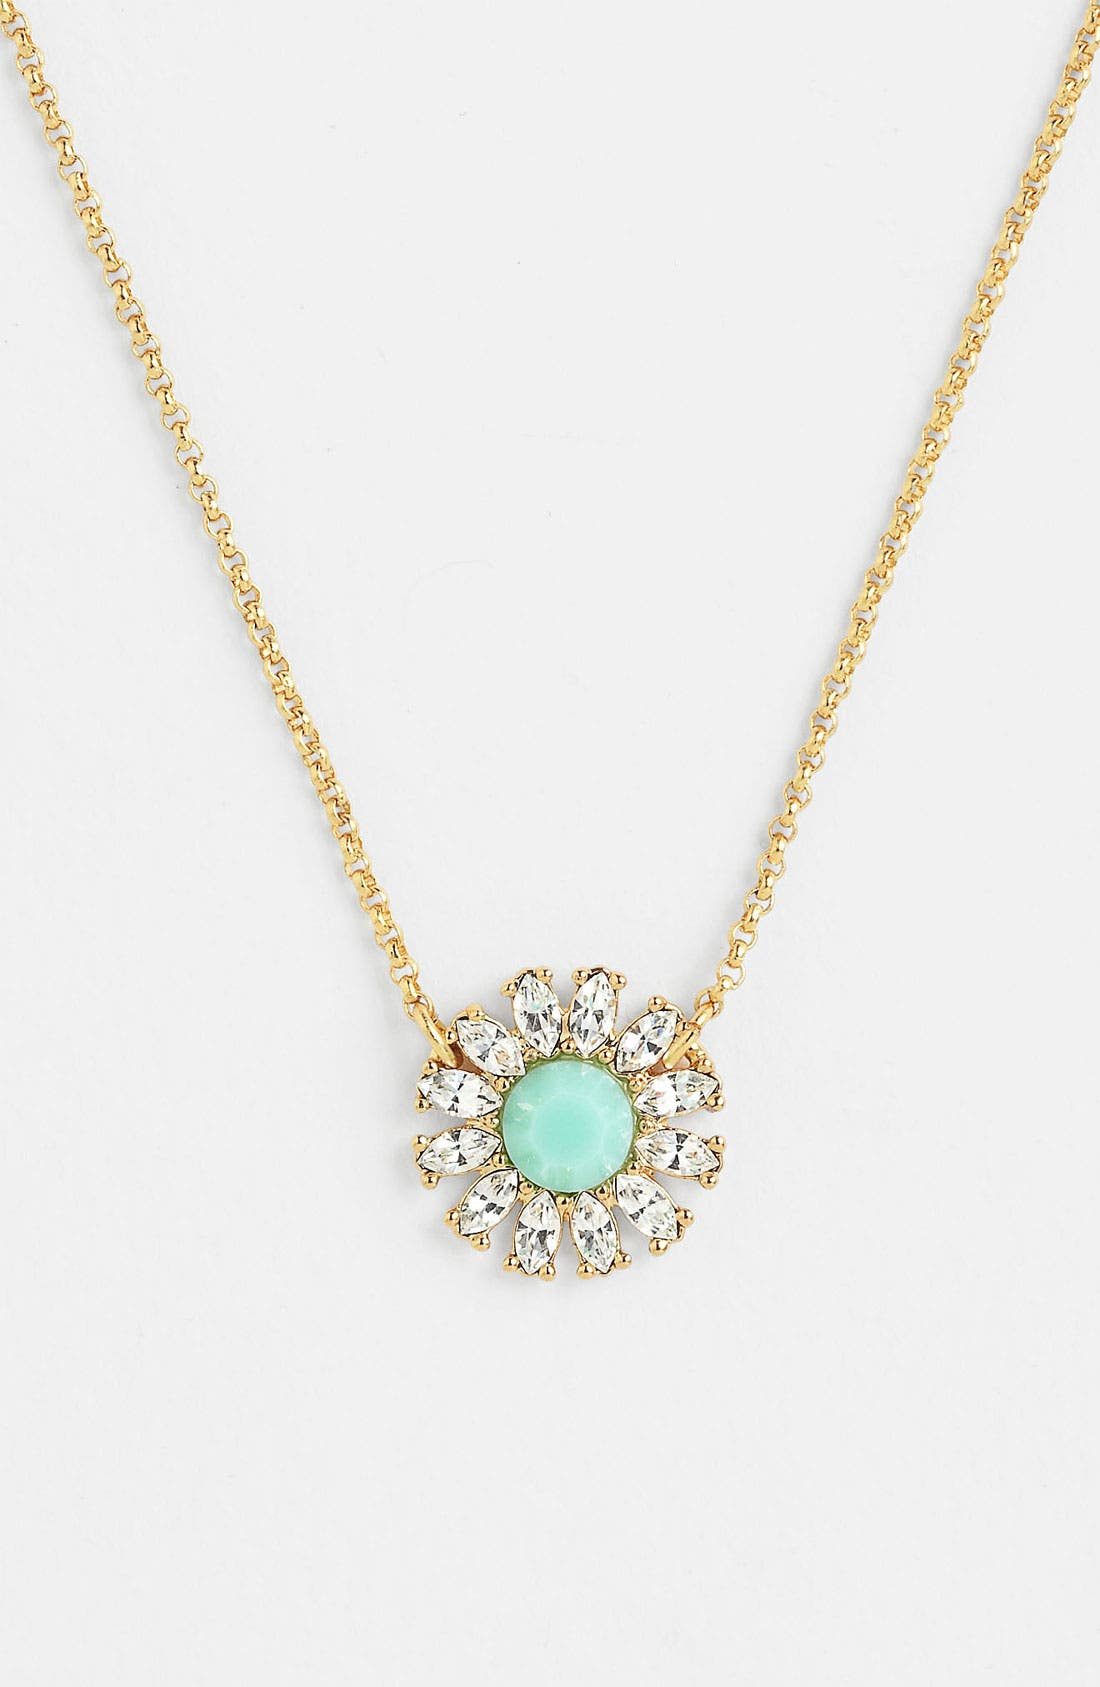 Alternate Image 1 Selected - kate spade new york 'estate garden' pendant necklace